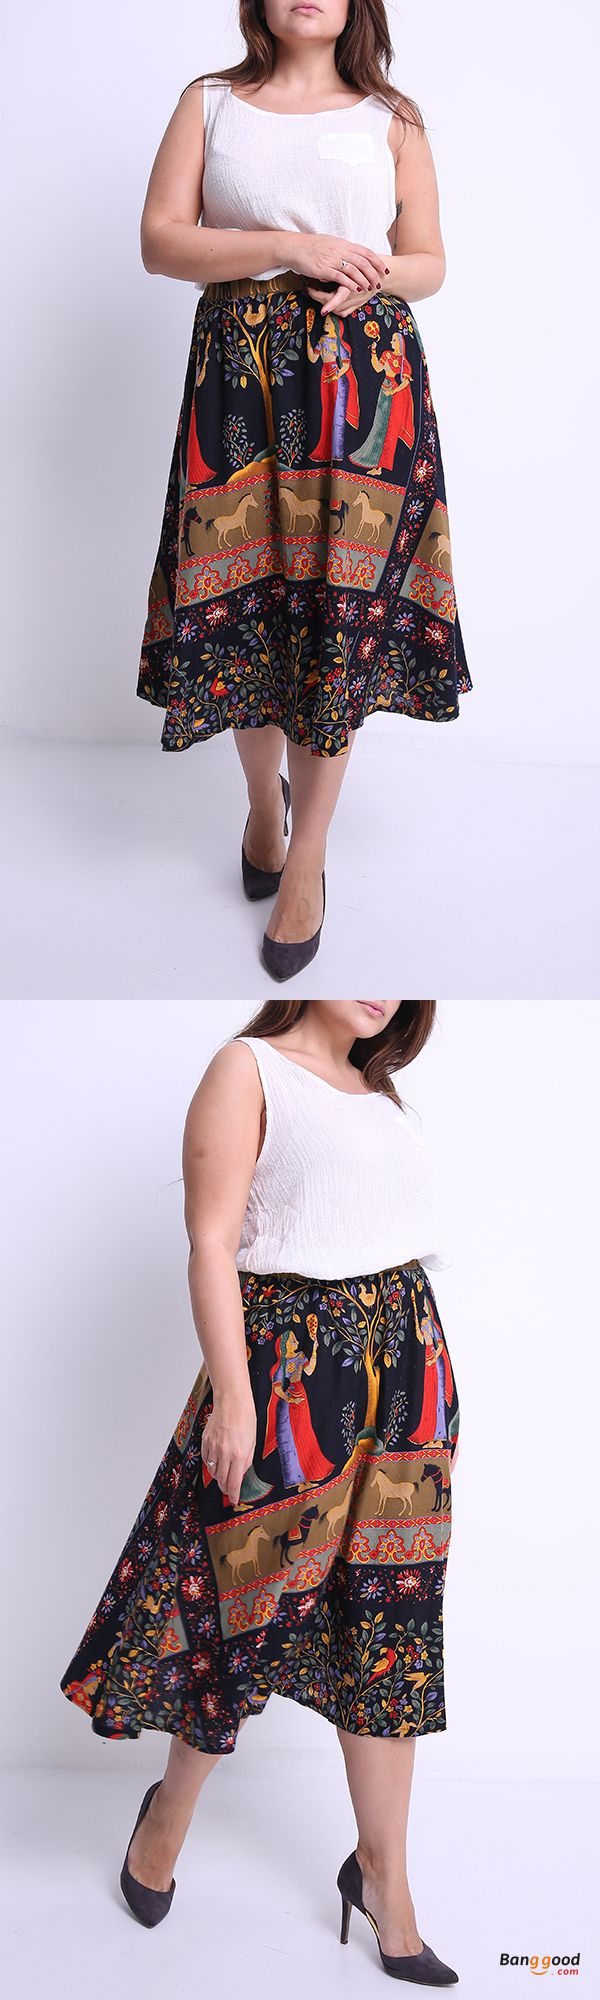 US$22.78 + Free shipping. Size: M~5XL. Fall in love with fashion and casual style! O-NEWE M-5XL Casual Women Ethnic Style Print Skirt.